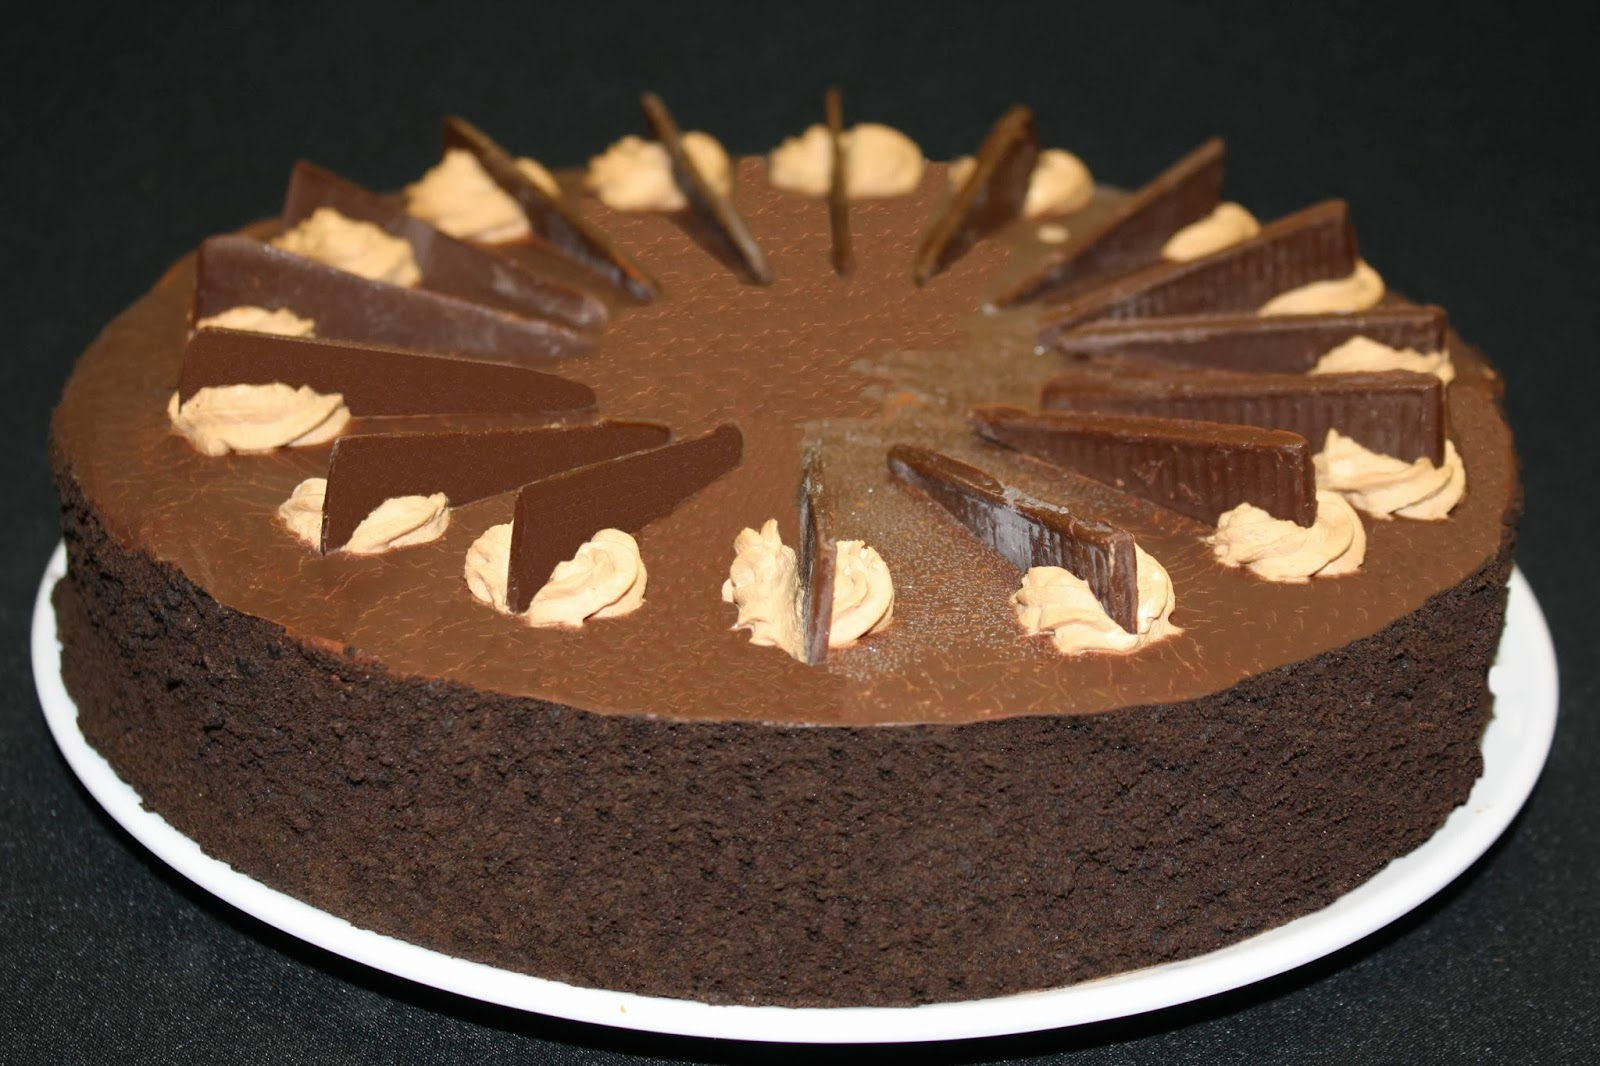 ... enjoy this top chocolate recipe – chocolate mousse cheesecake recipe